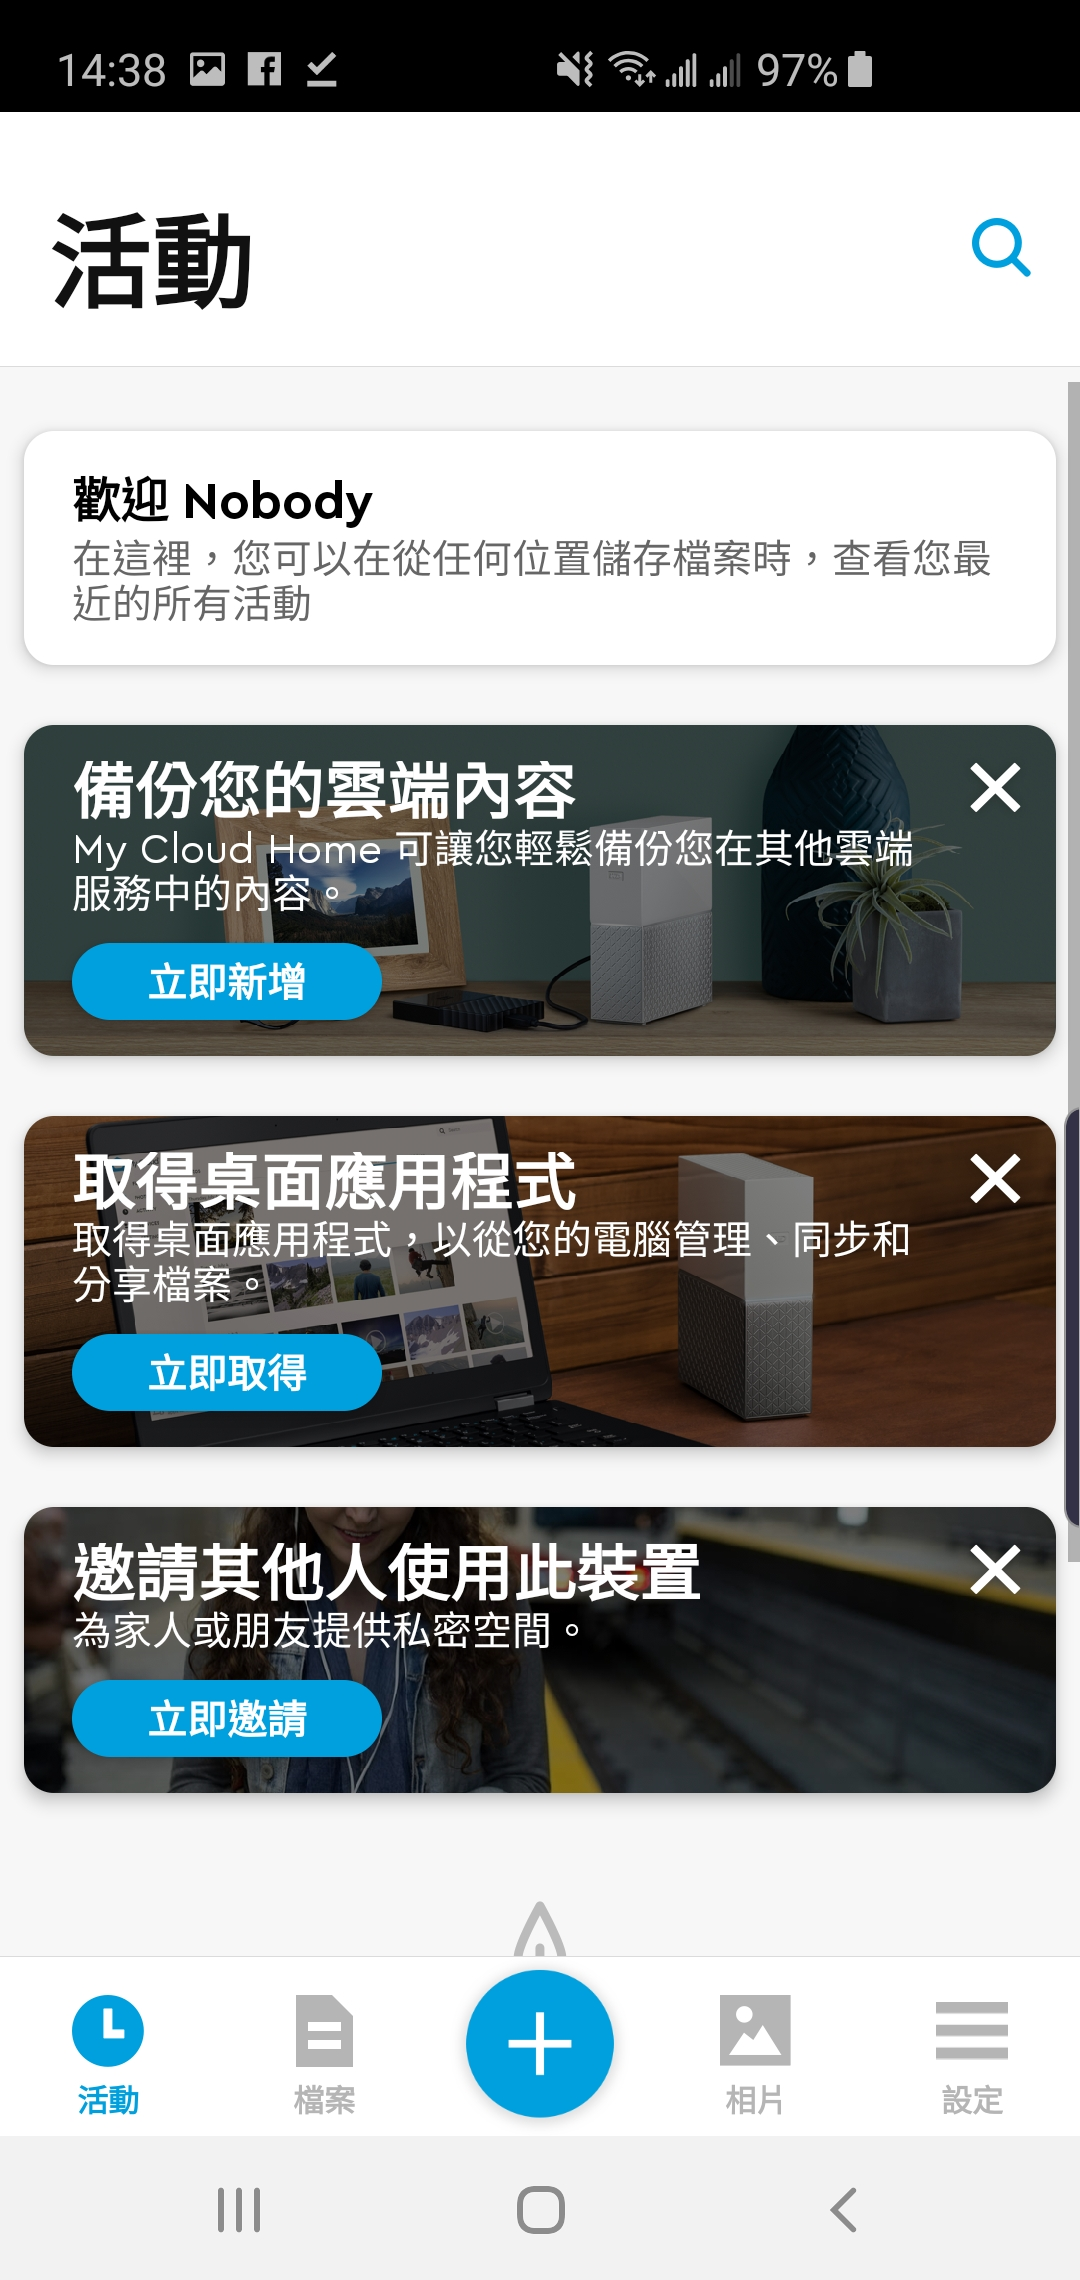 WD My Cloud Home開箱 教學